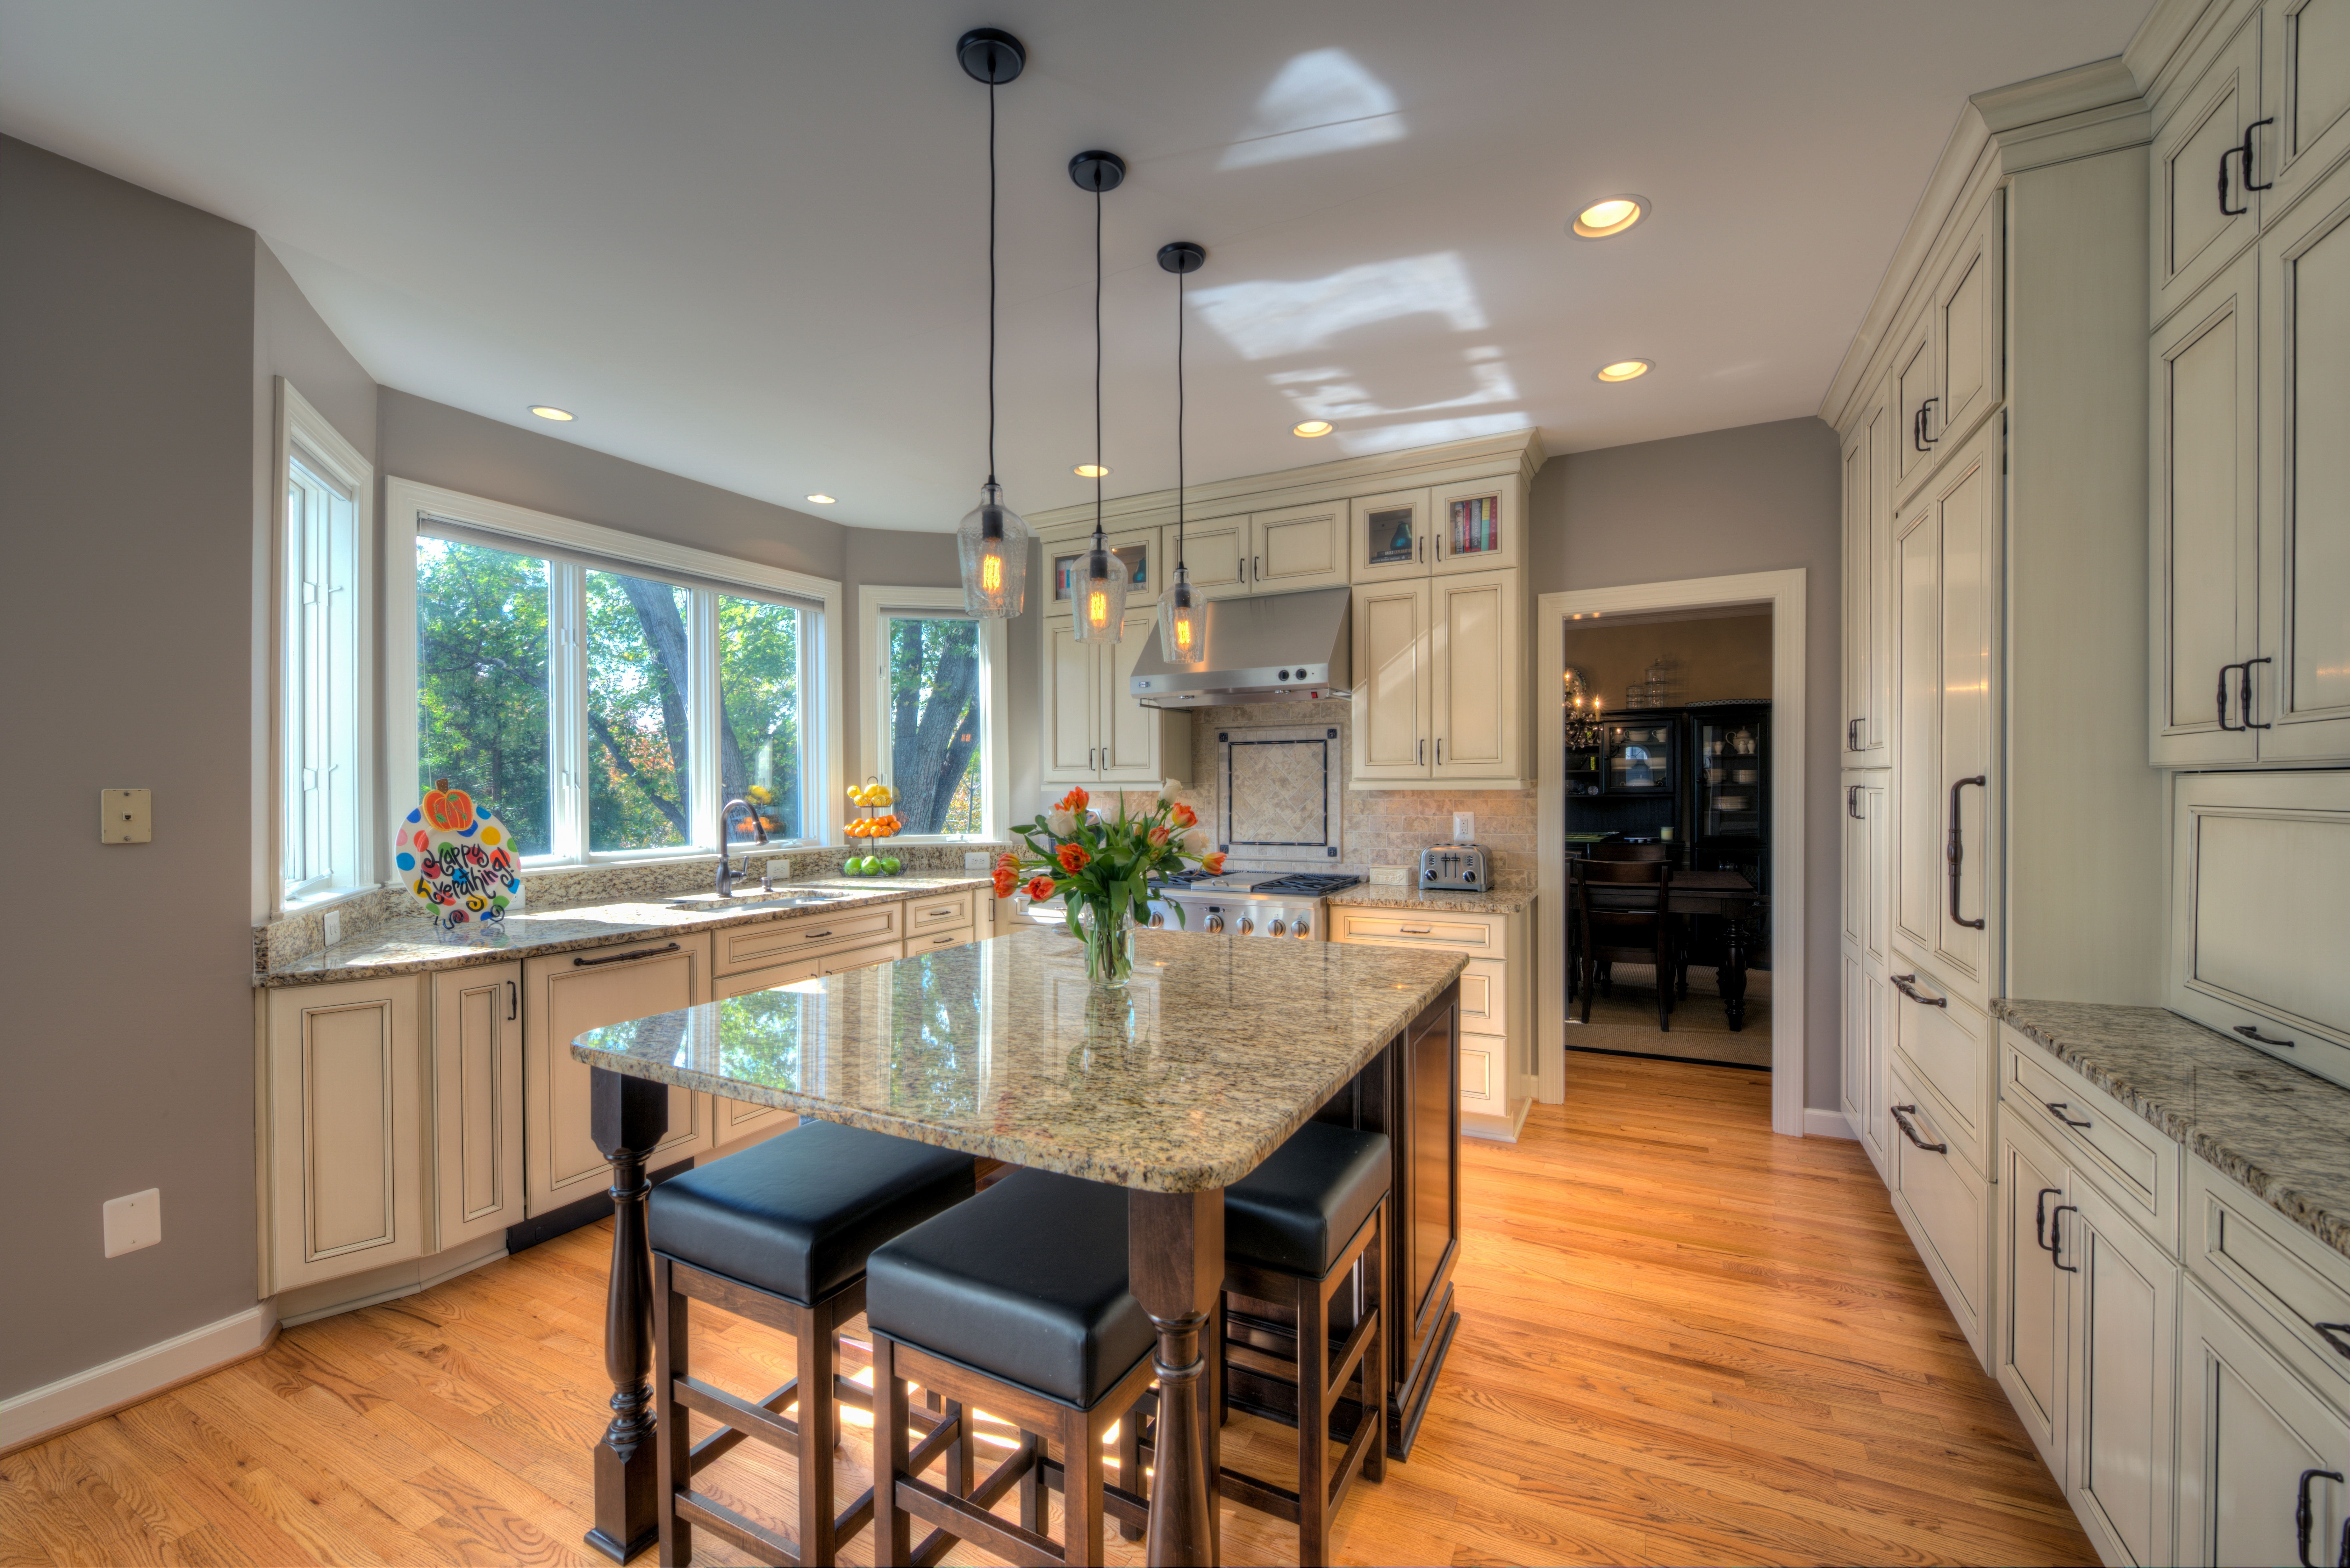 Our fourth example of a transitional kitchen is in herndon virginia the large windows in this kitchen create a space that is well lit with natural light